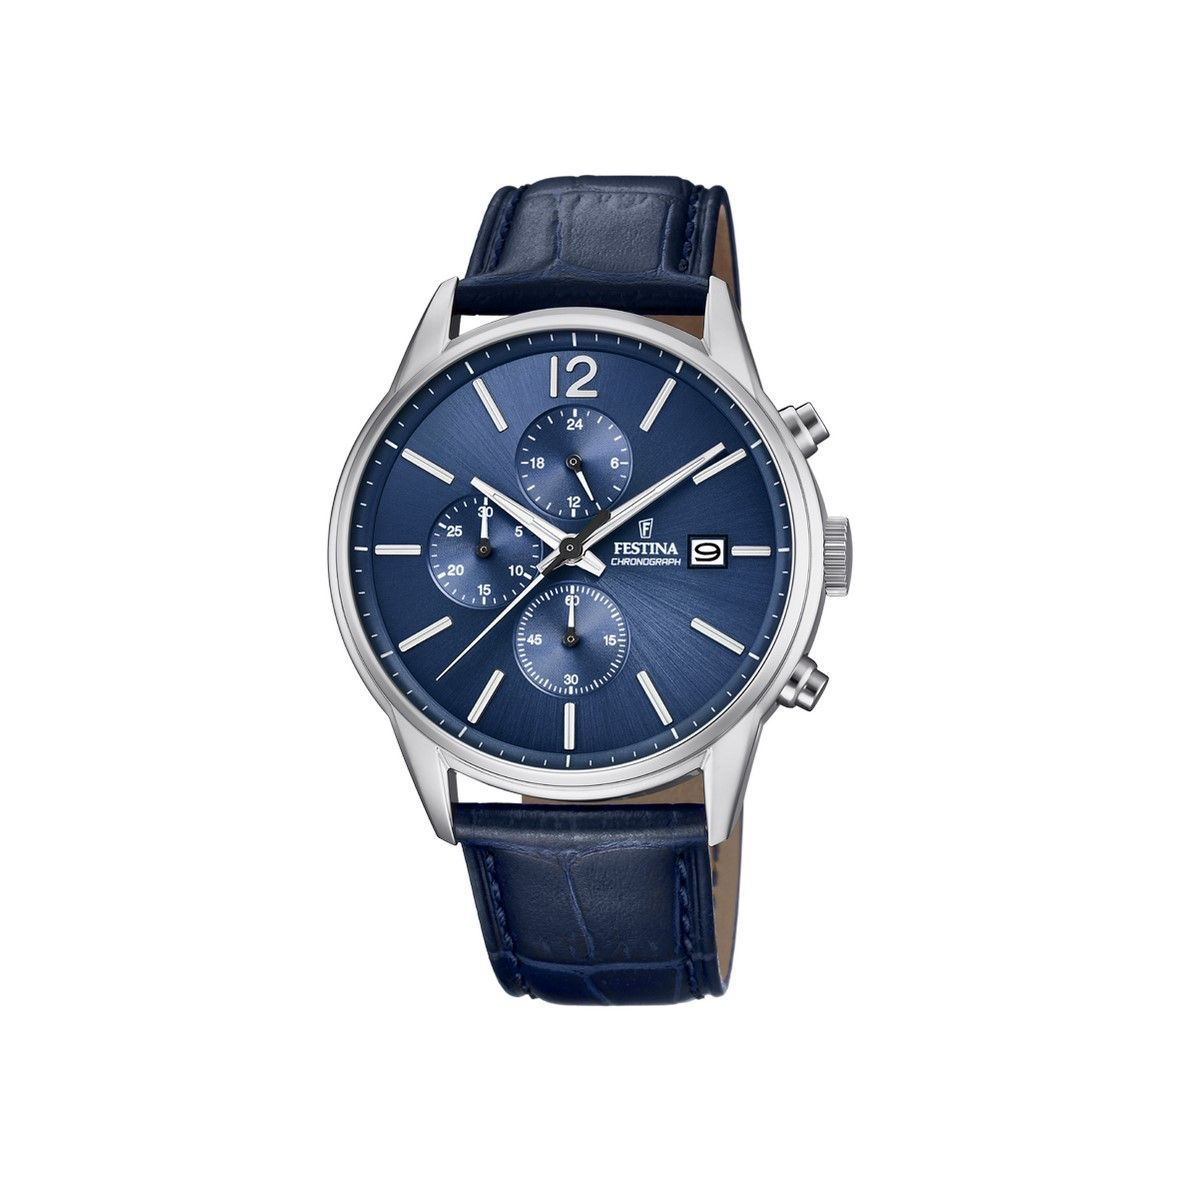 Montre Festina Homme Timeless Chronograph F20284/3 vue 1